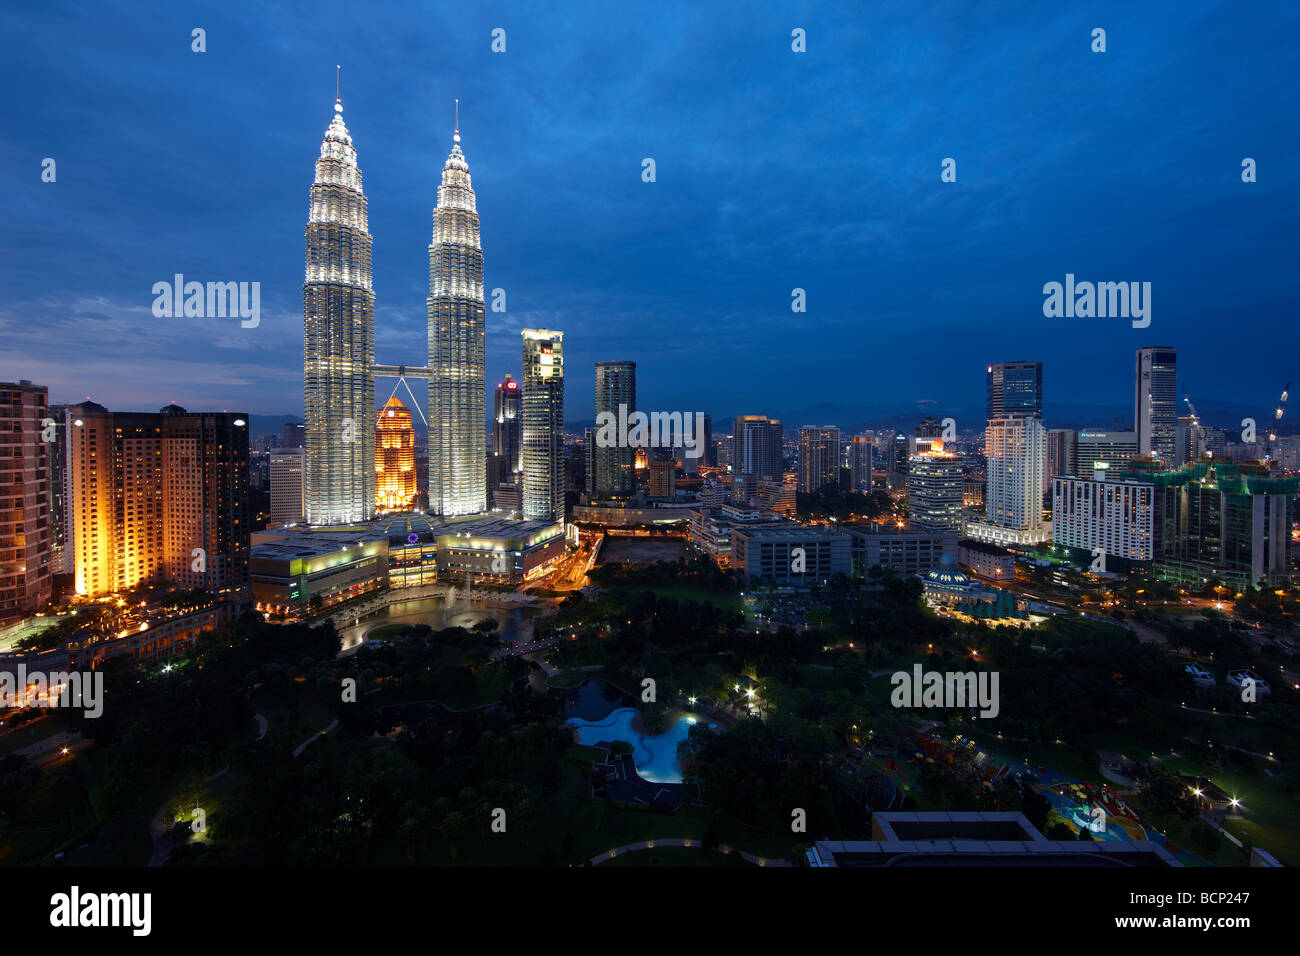 the Petronas Towers and the Kuala Lumpur skyline at night, Malaysia - Stock Image